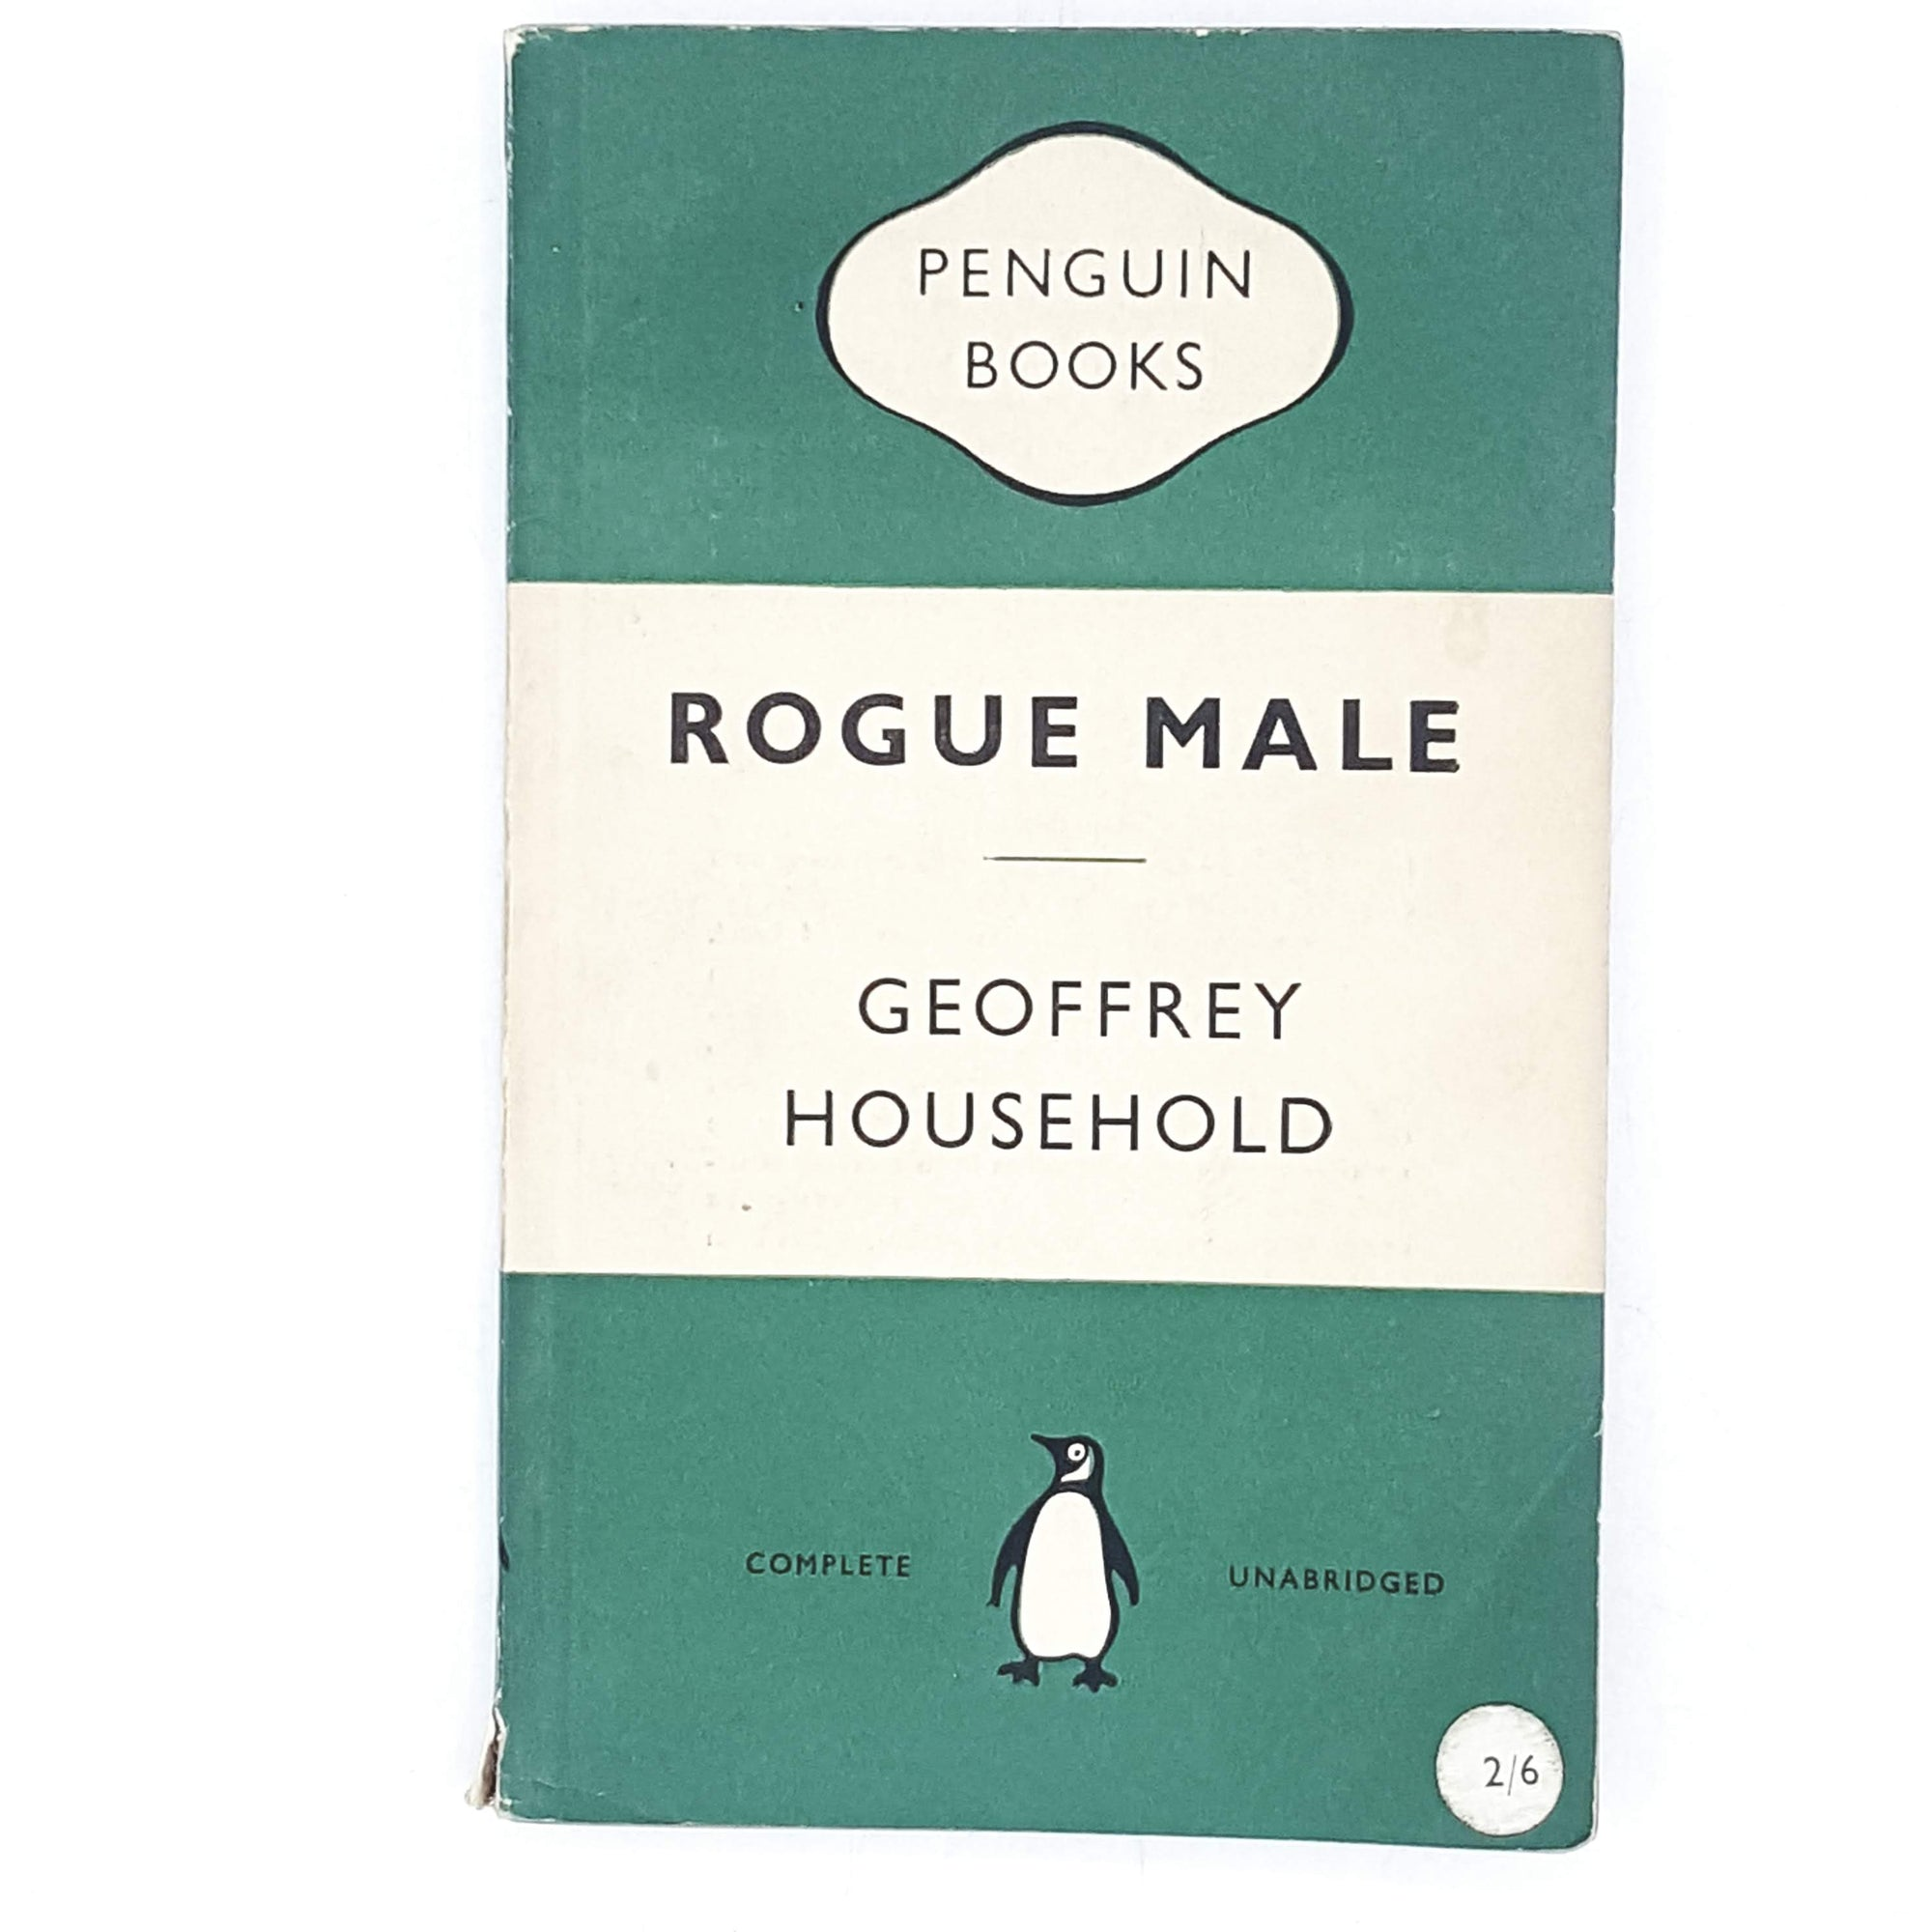 Vintage Penguin Rogue Male by Geoffrey Household 1954